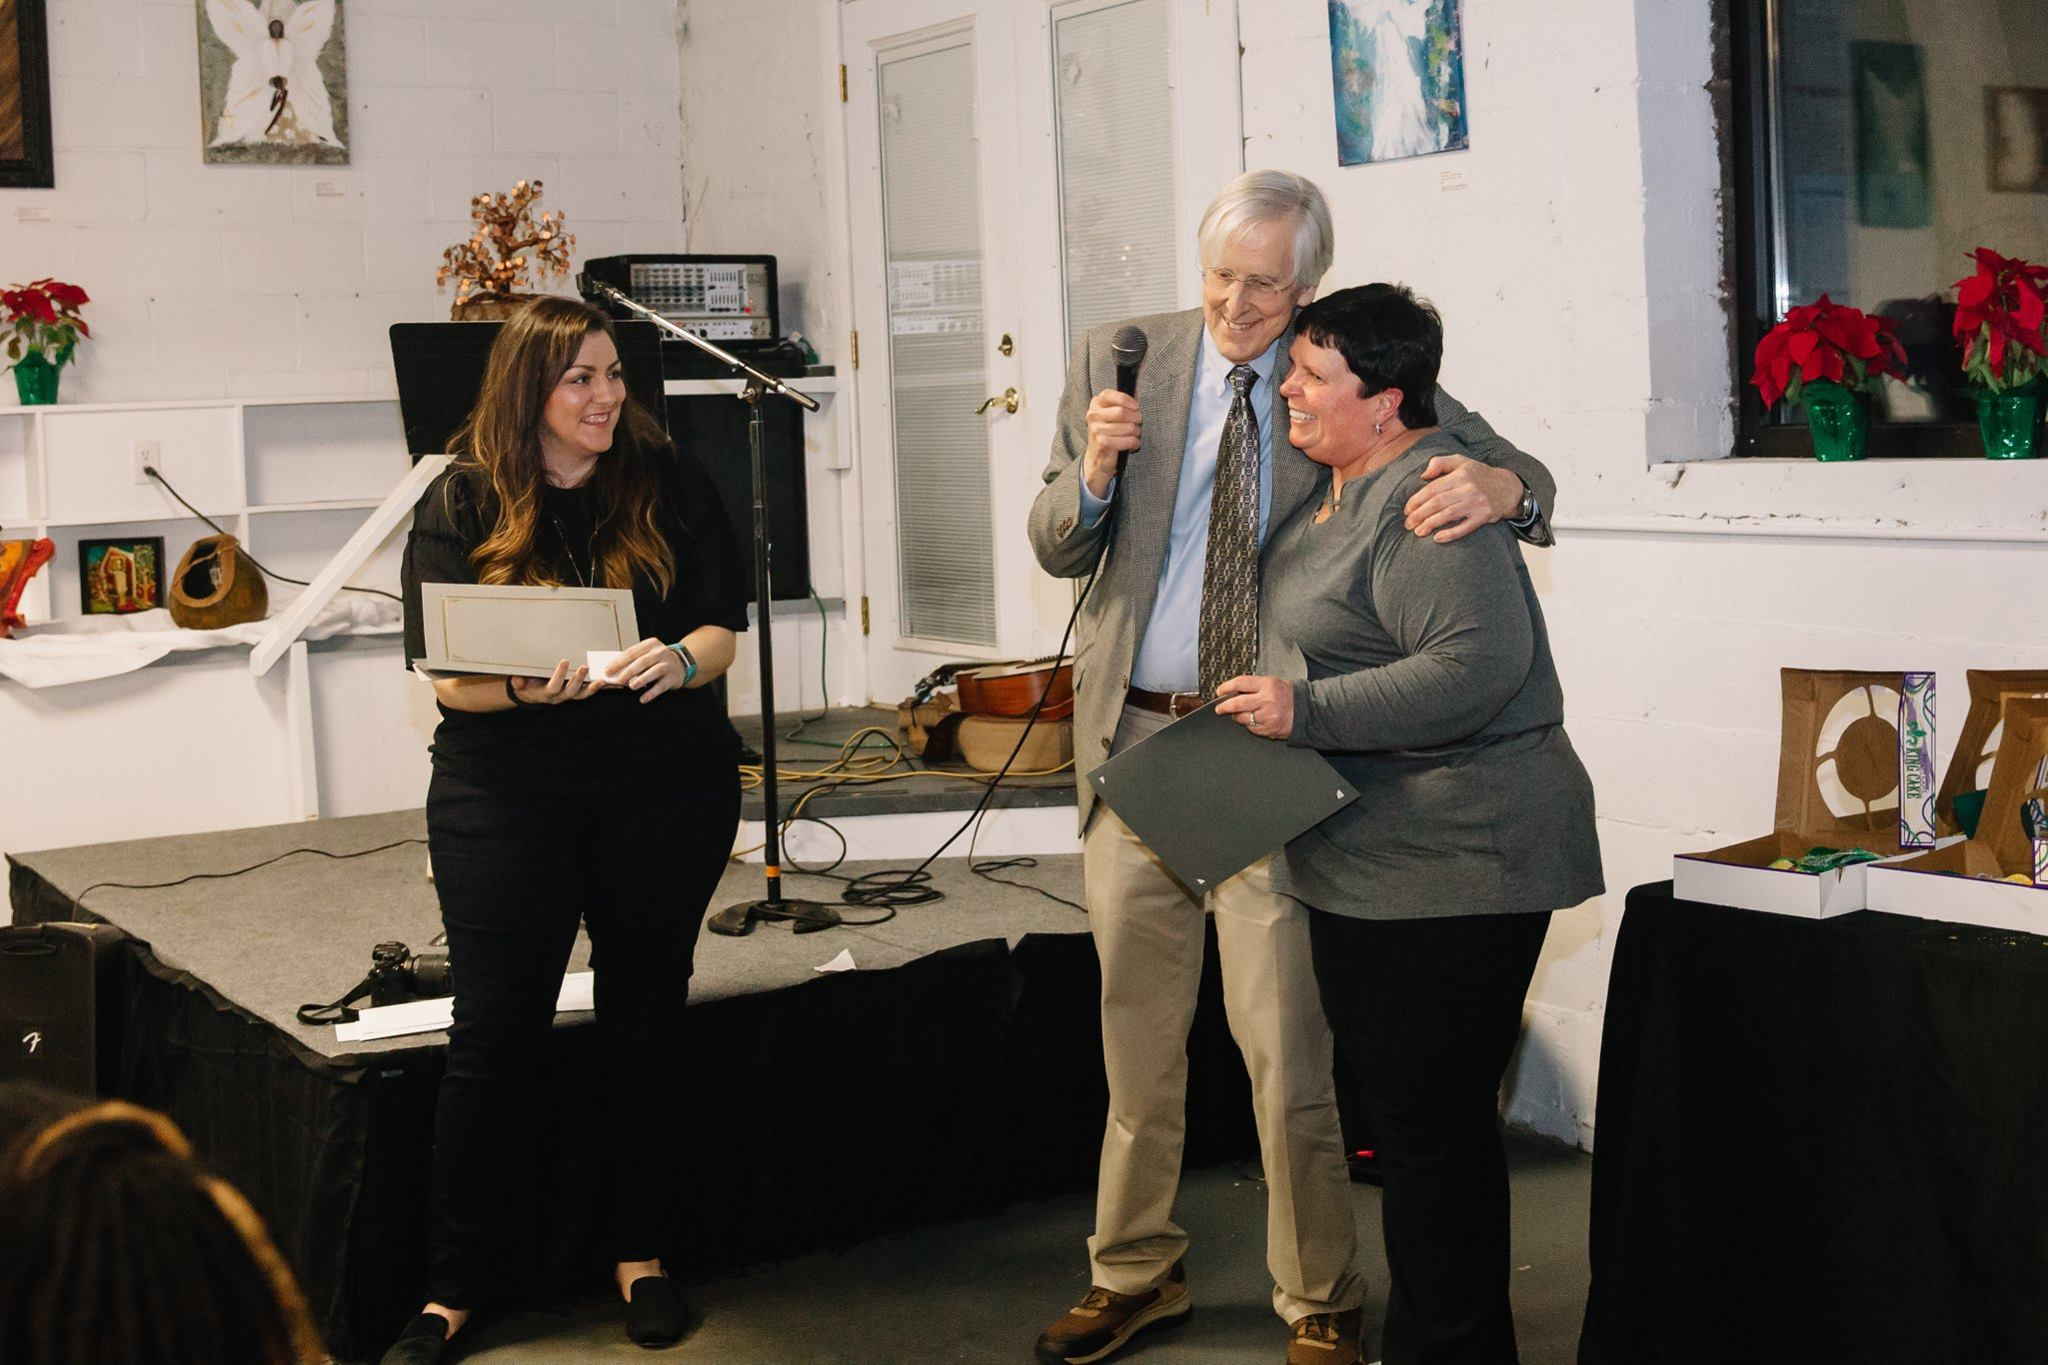 Pictured from Left to Right: Cara Beth Buie, Peter Jones, and Cathi Cox- Bonoil at the NCLAC annual membership meeting in January of 2019.